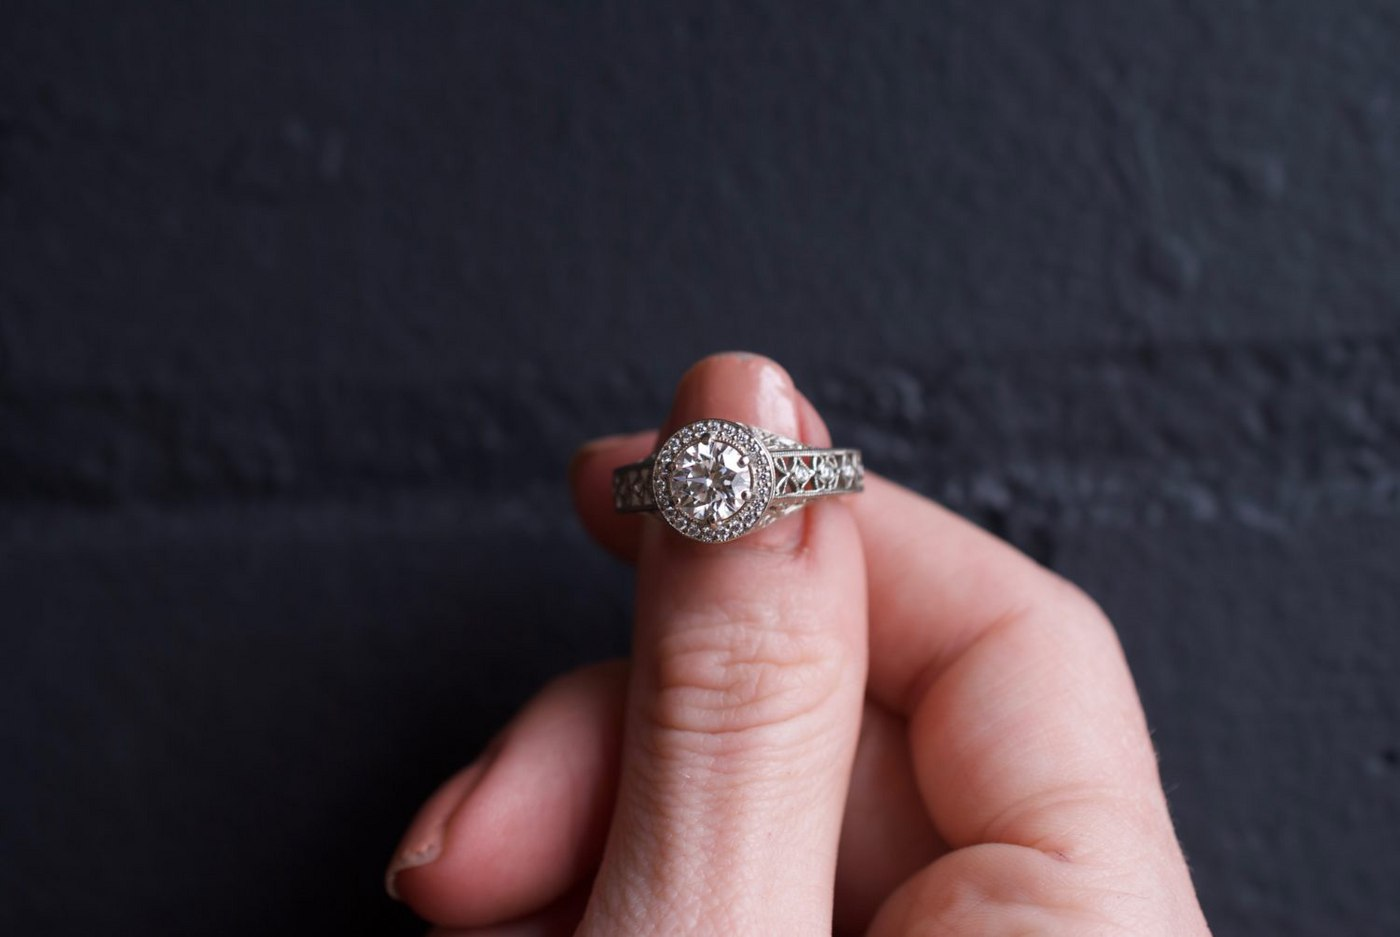 How to Figure Out What Engagement Ring You Want